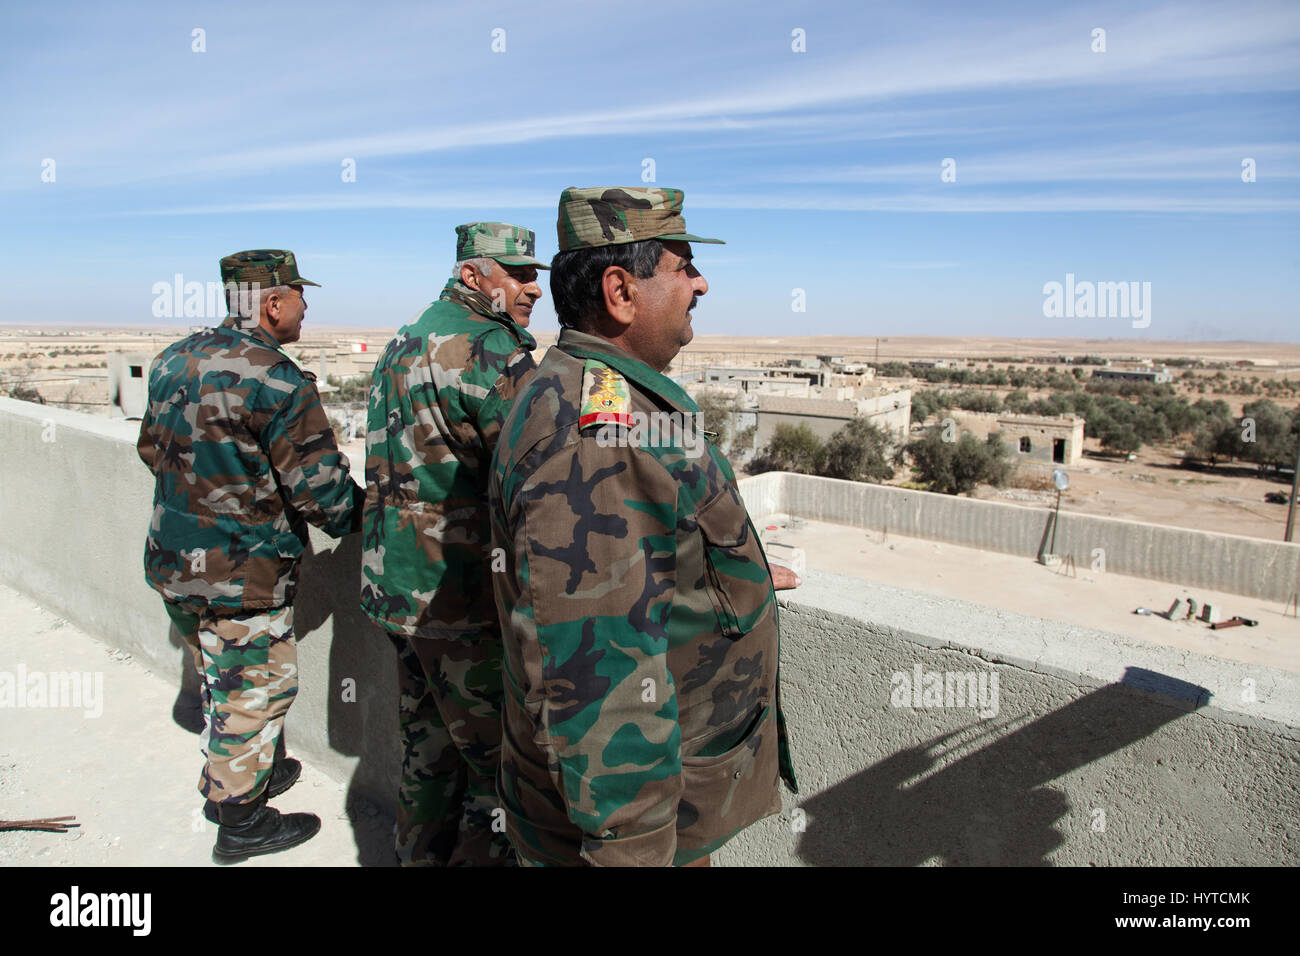 Syrian army generals on the frontline - Stock Image